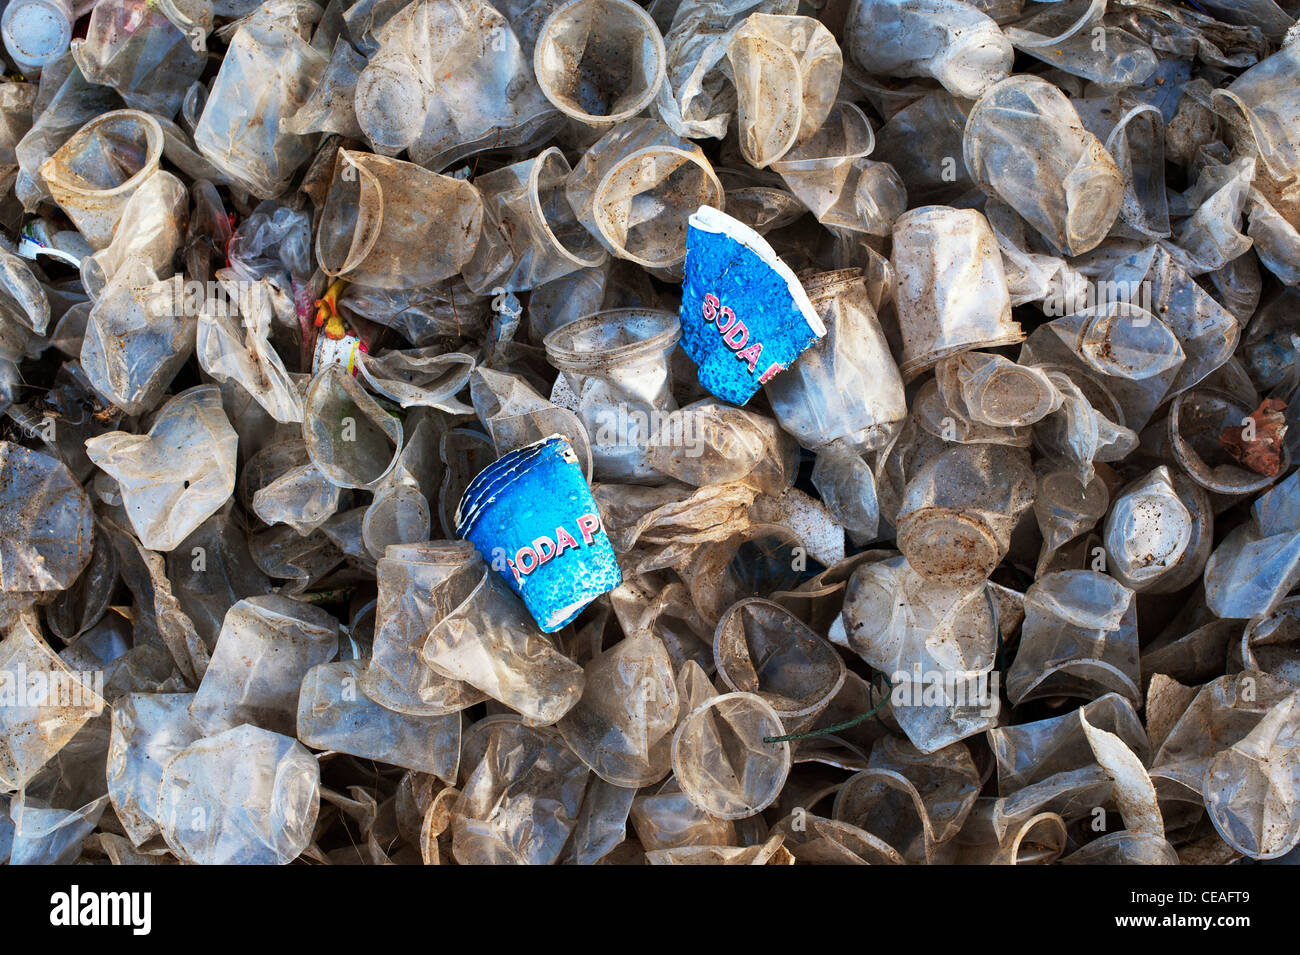 Discarded paper soda cups amongst plastic tea cups in the Indian countryside. Andhra Pradesh, India - Stock Image